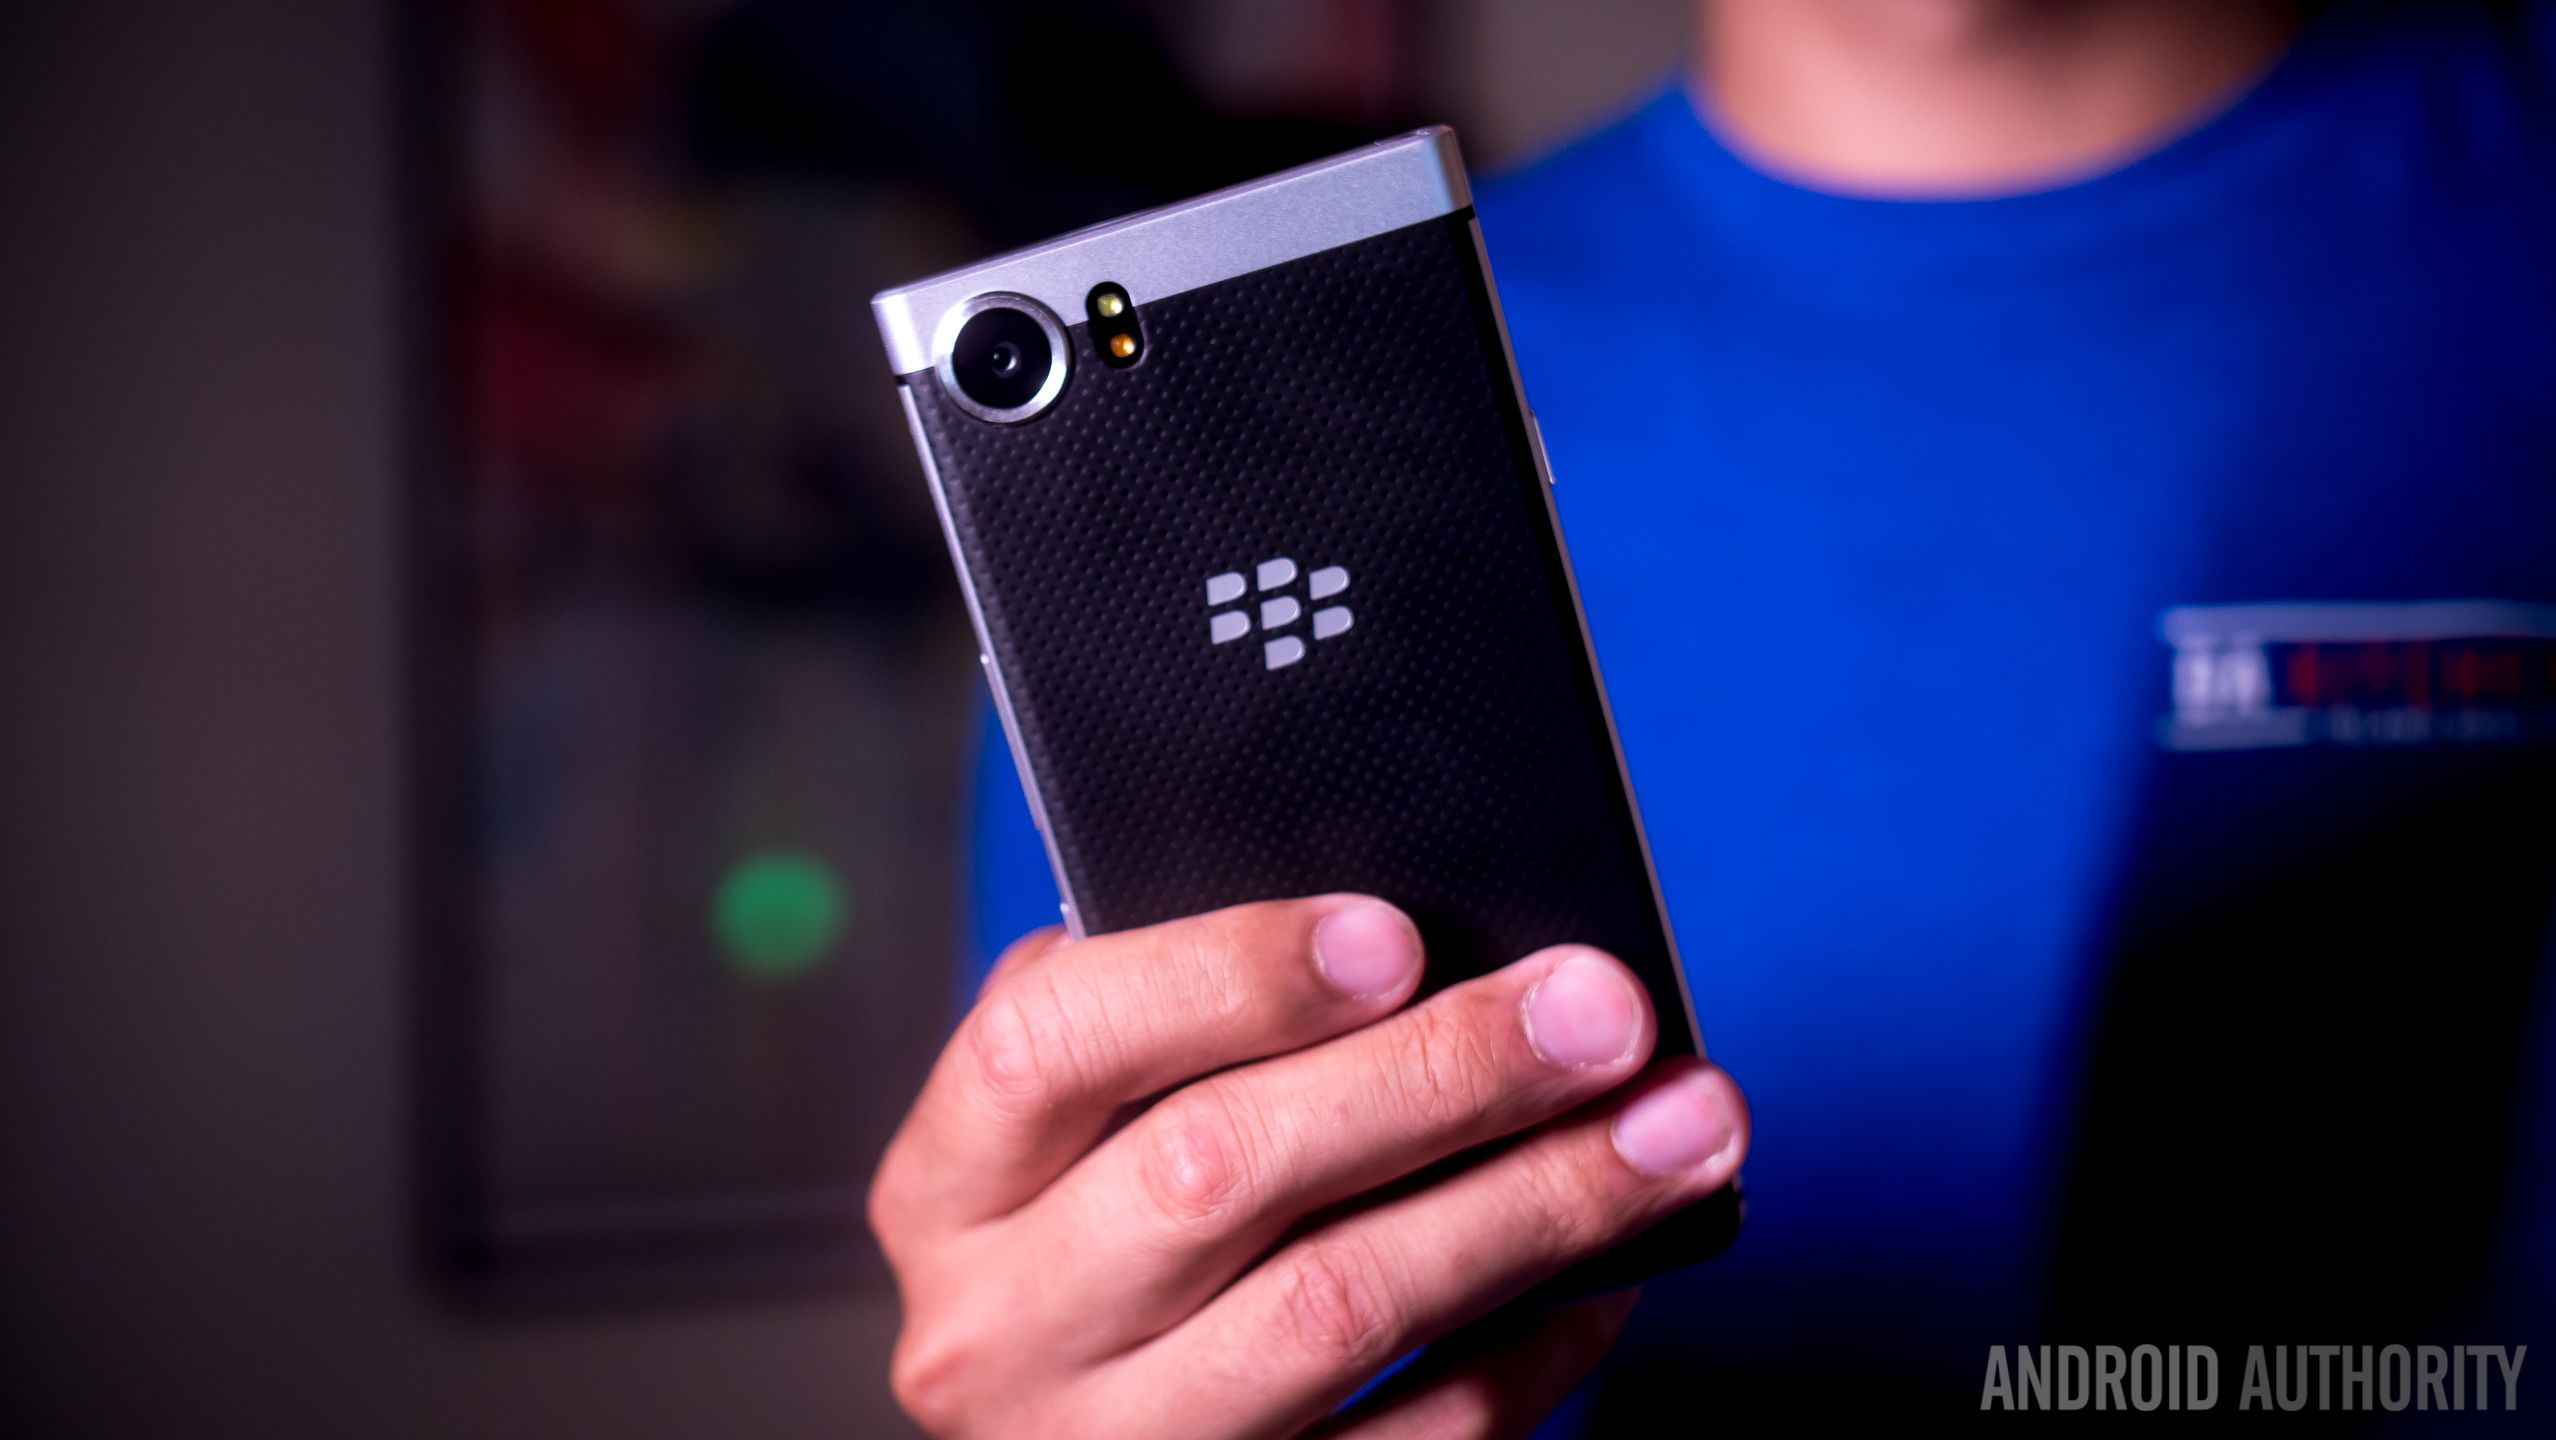 BlackBerry to announce its own version of secure Android OS | Verdis